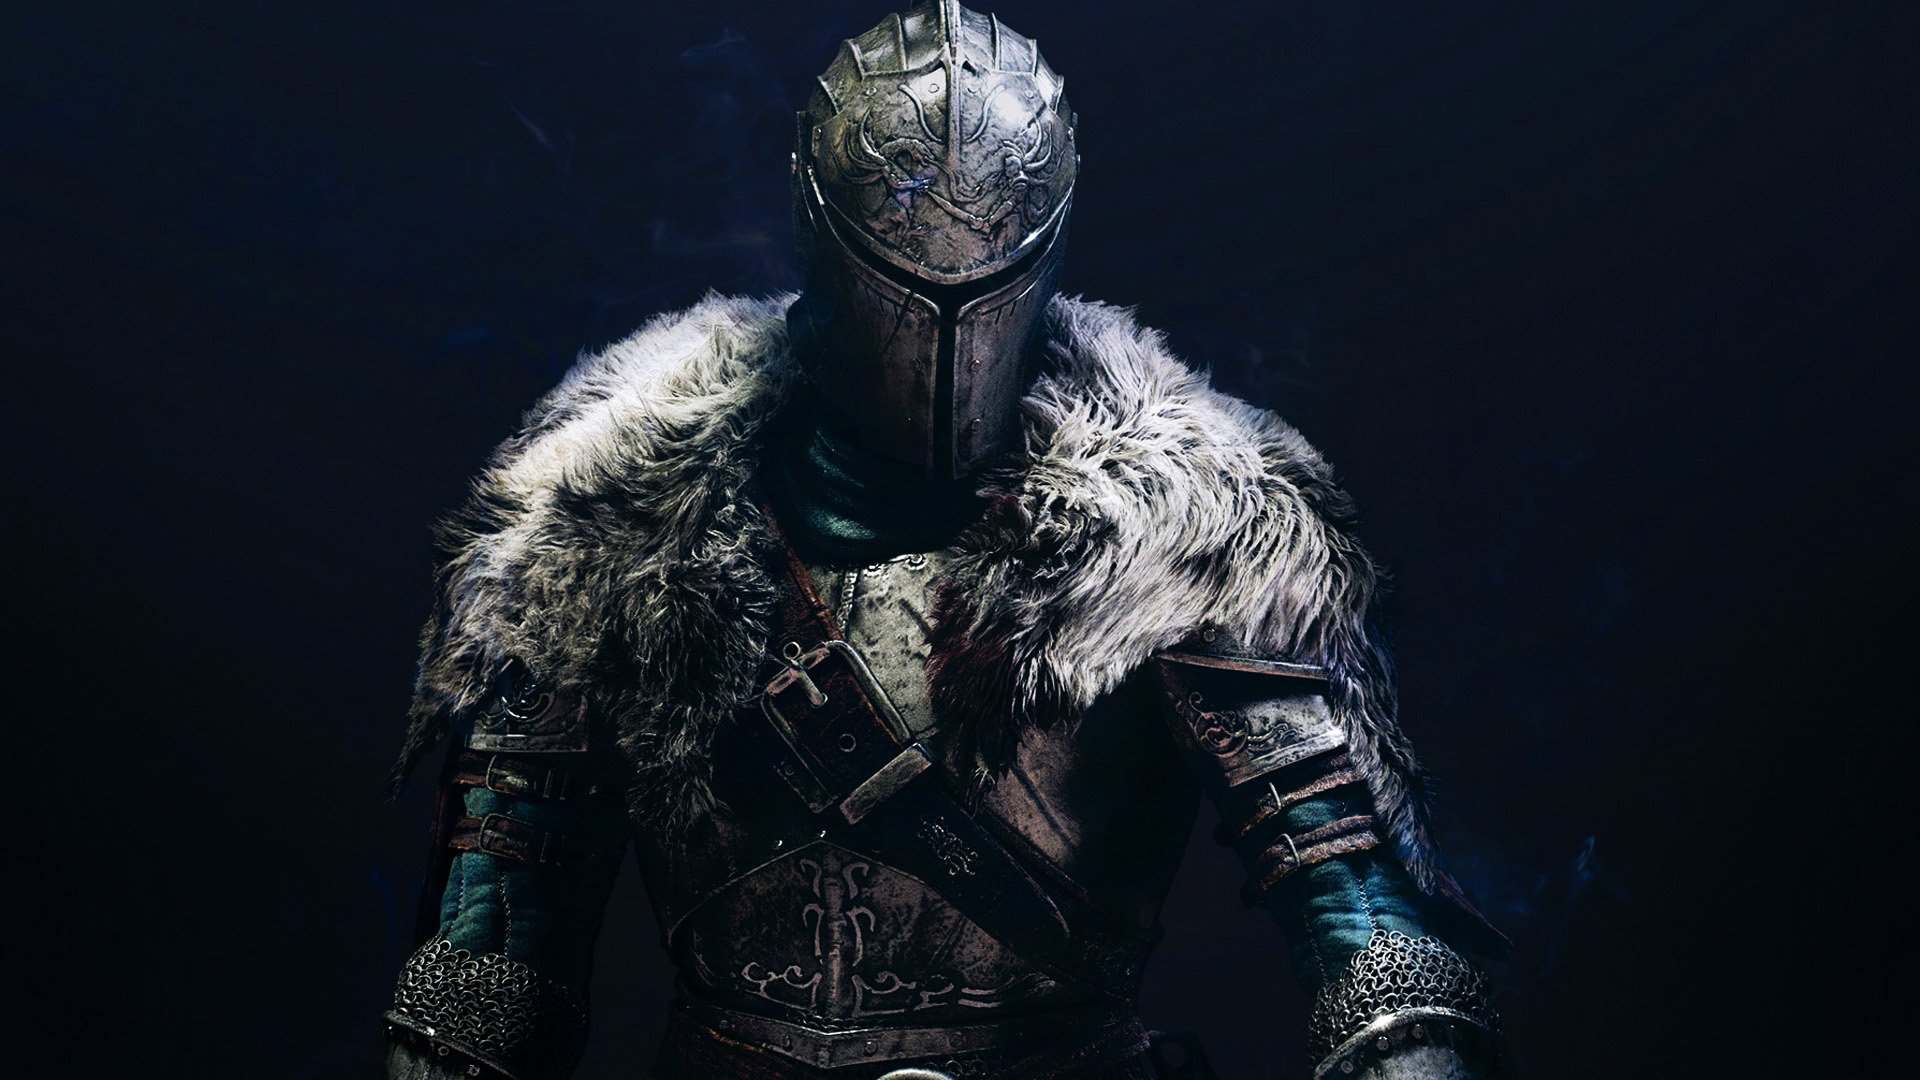 Dark Souls 2 Video Game 2k HD Wallpaper 1920x1080